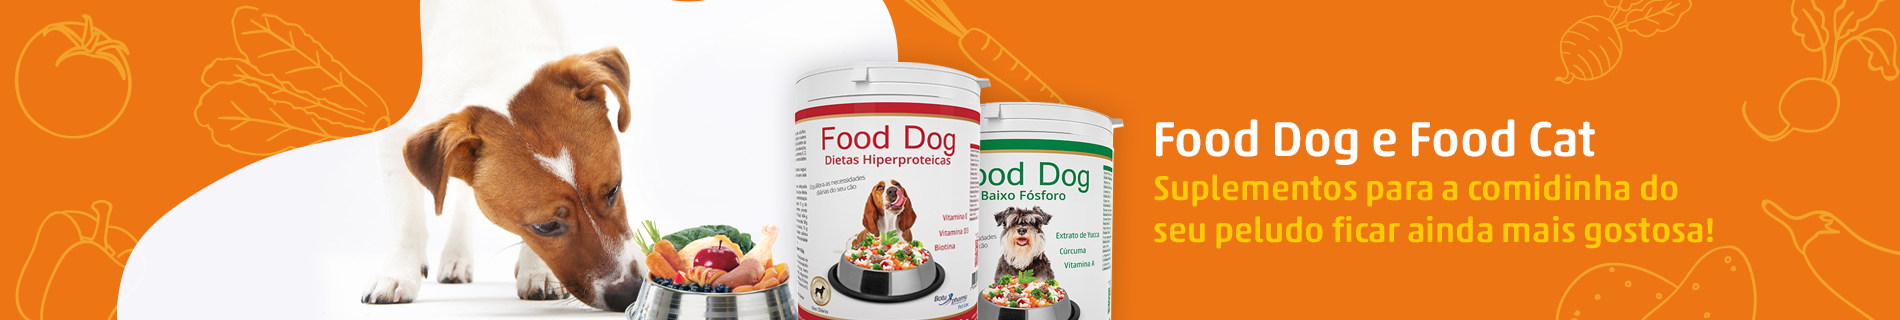 Food Dog, Food Cat e Suplementos Botupharma